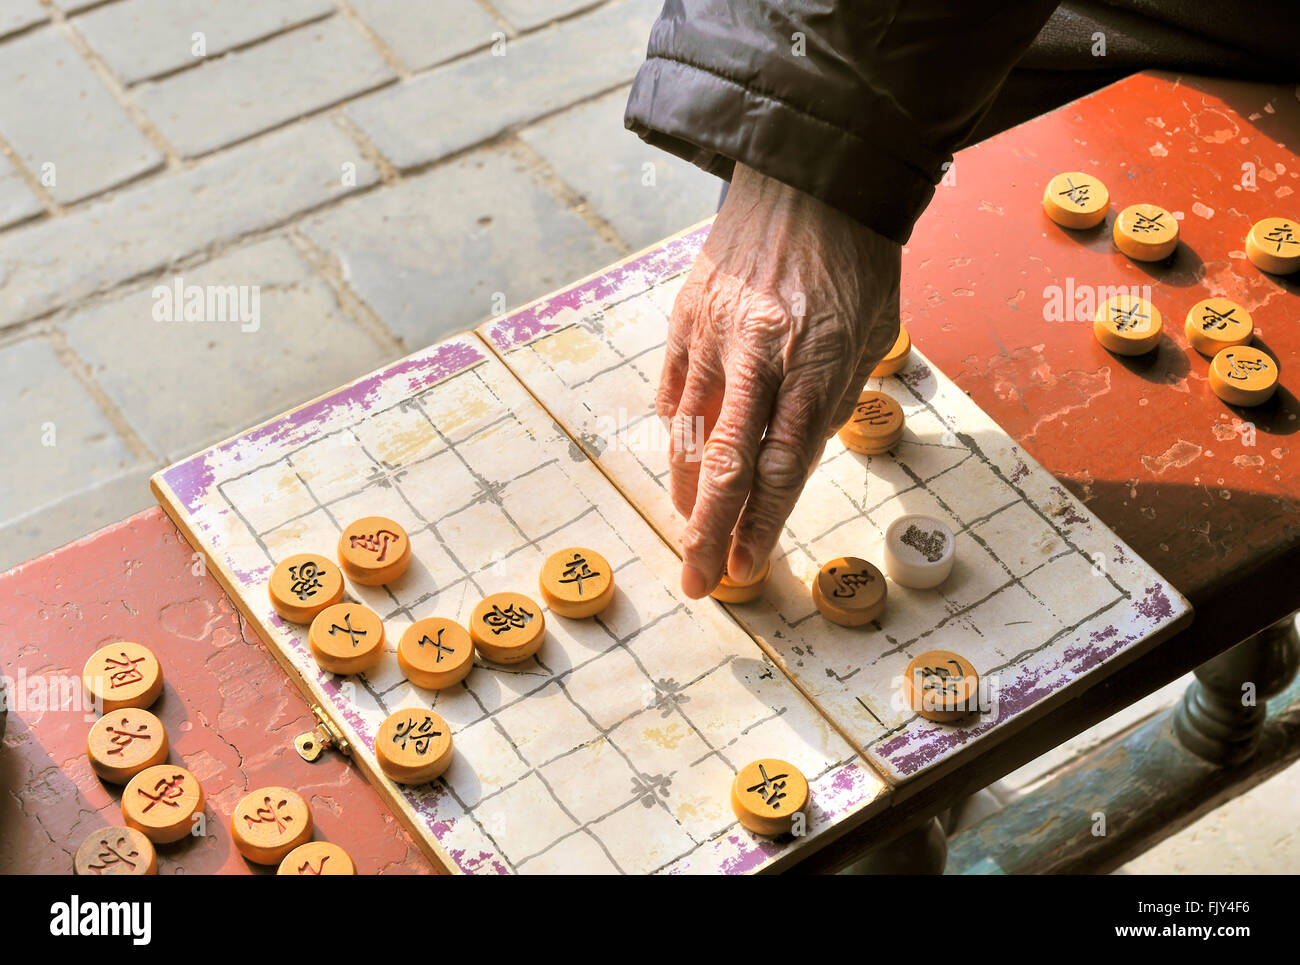 A man makes a move on a on a local Beijing Chinese chess game board. Xiangqi, also known as Chinese chess, is an - Stock Image